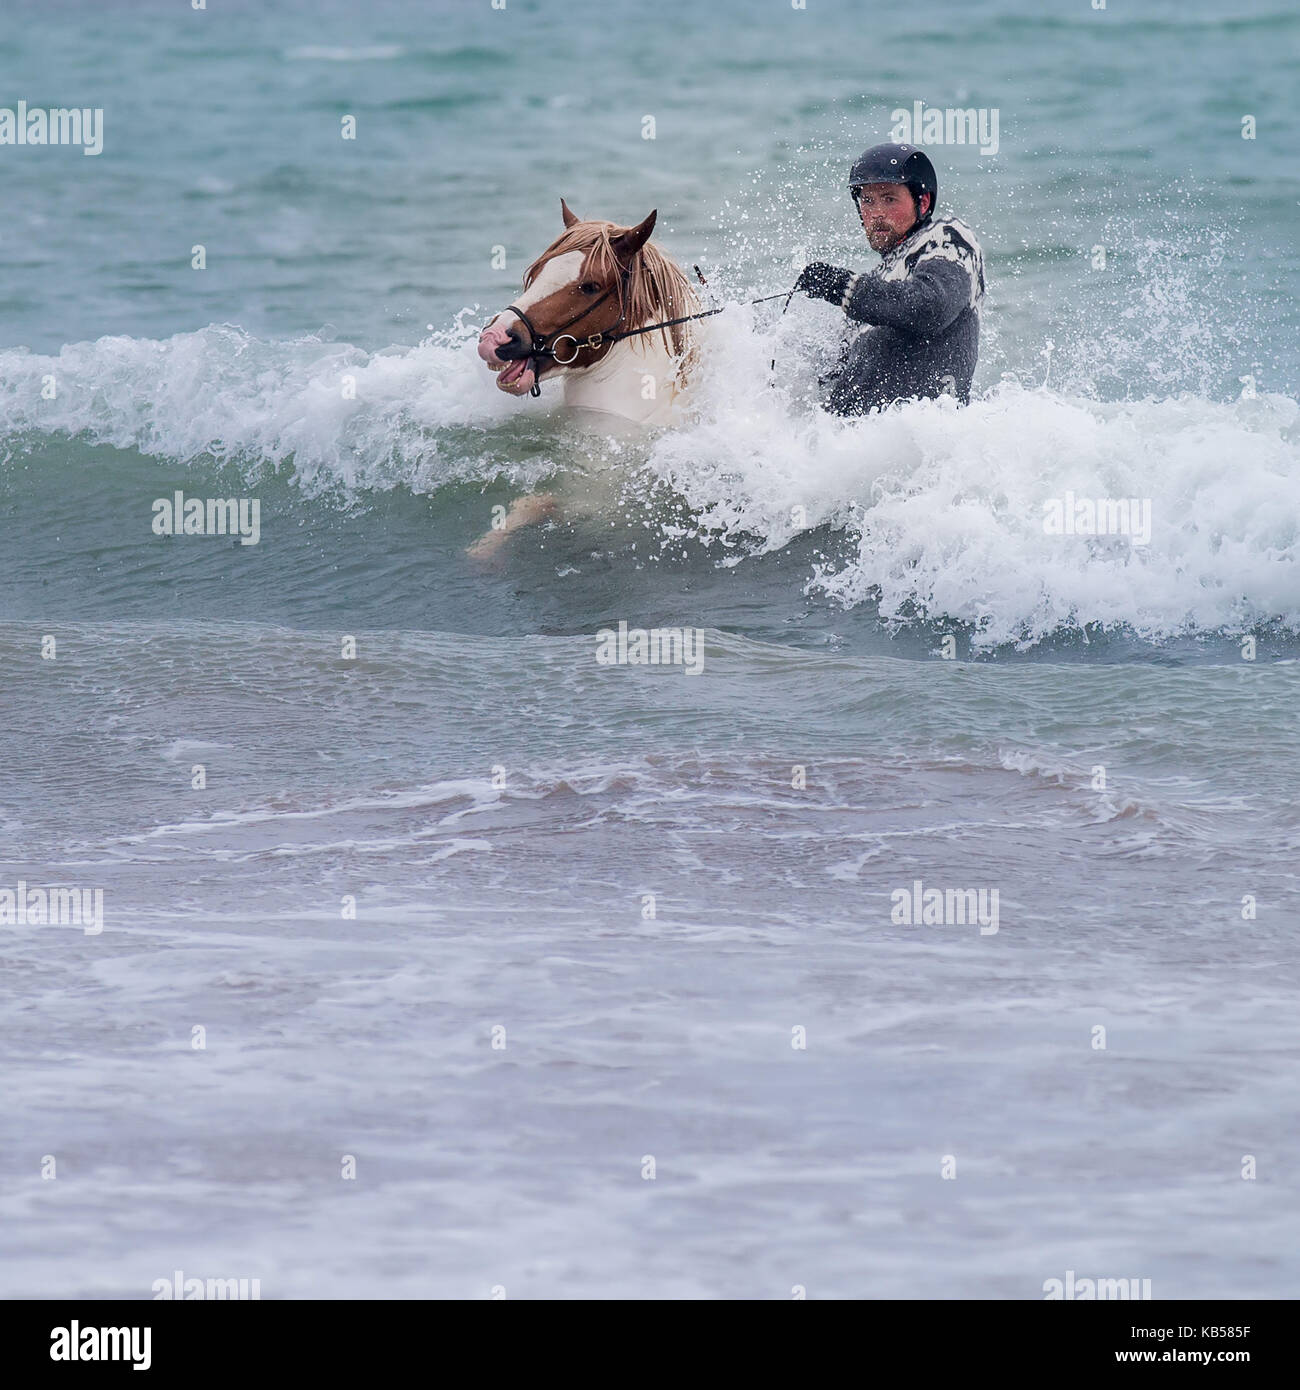 Horseback riding in the sea, Iceland Icelandic horse and rider at Longufjorur beach, Snaefellsnes Peninsula, Iceland - Stock Image